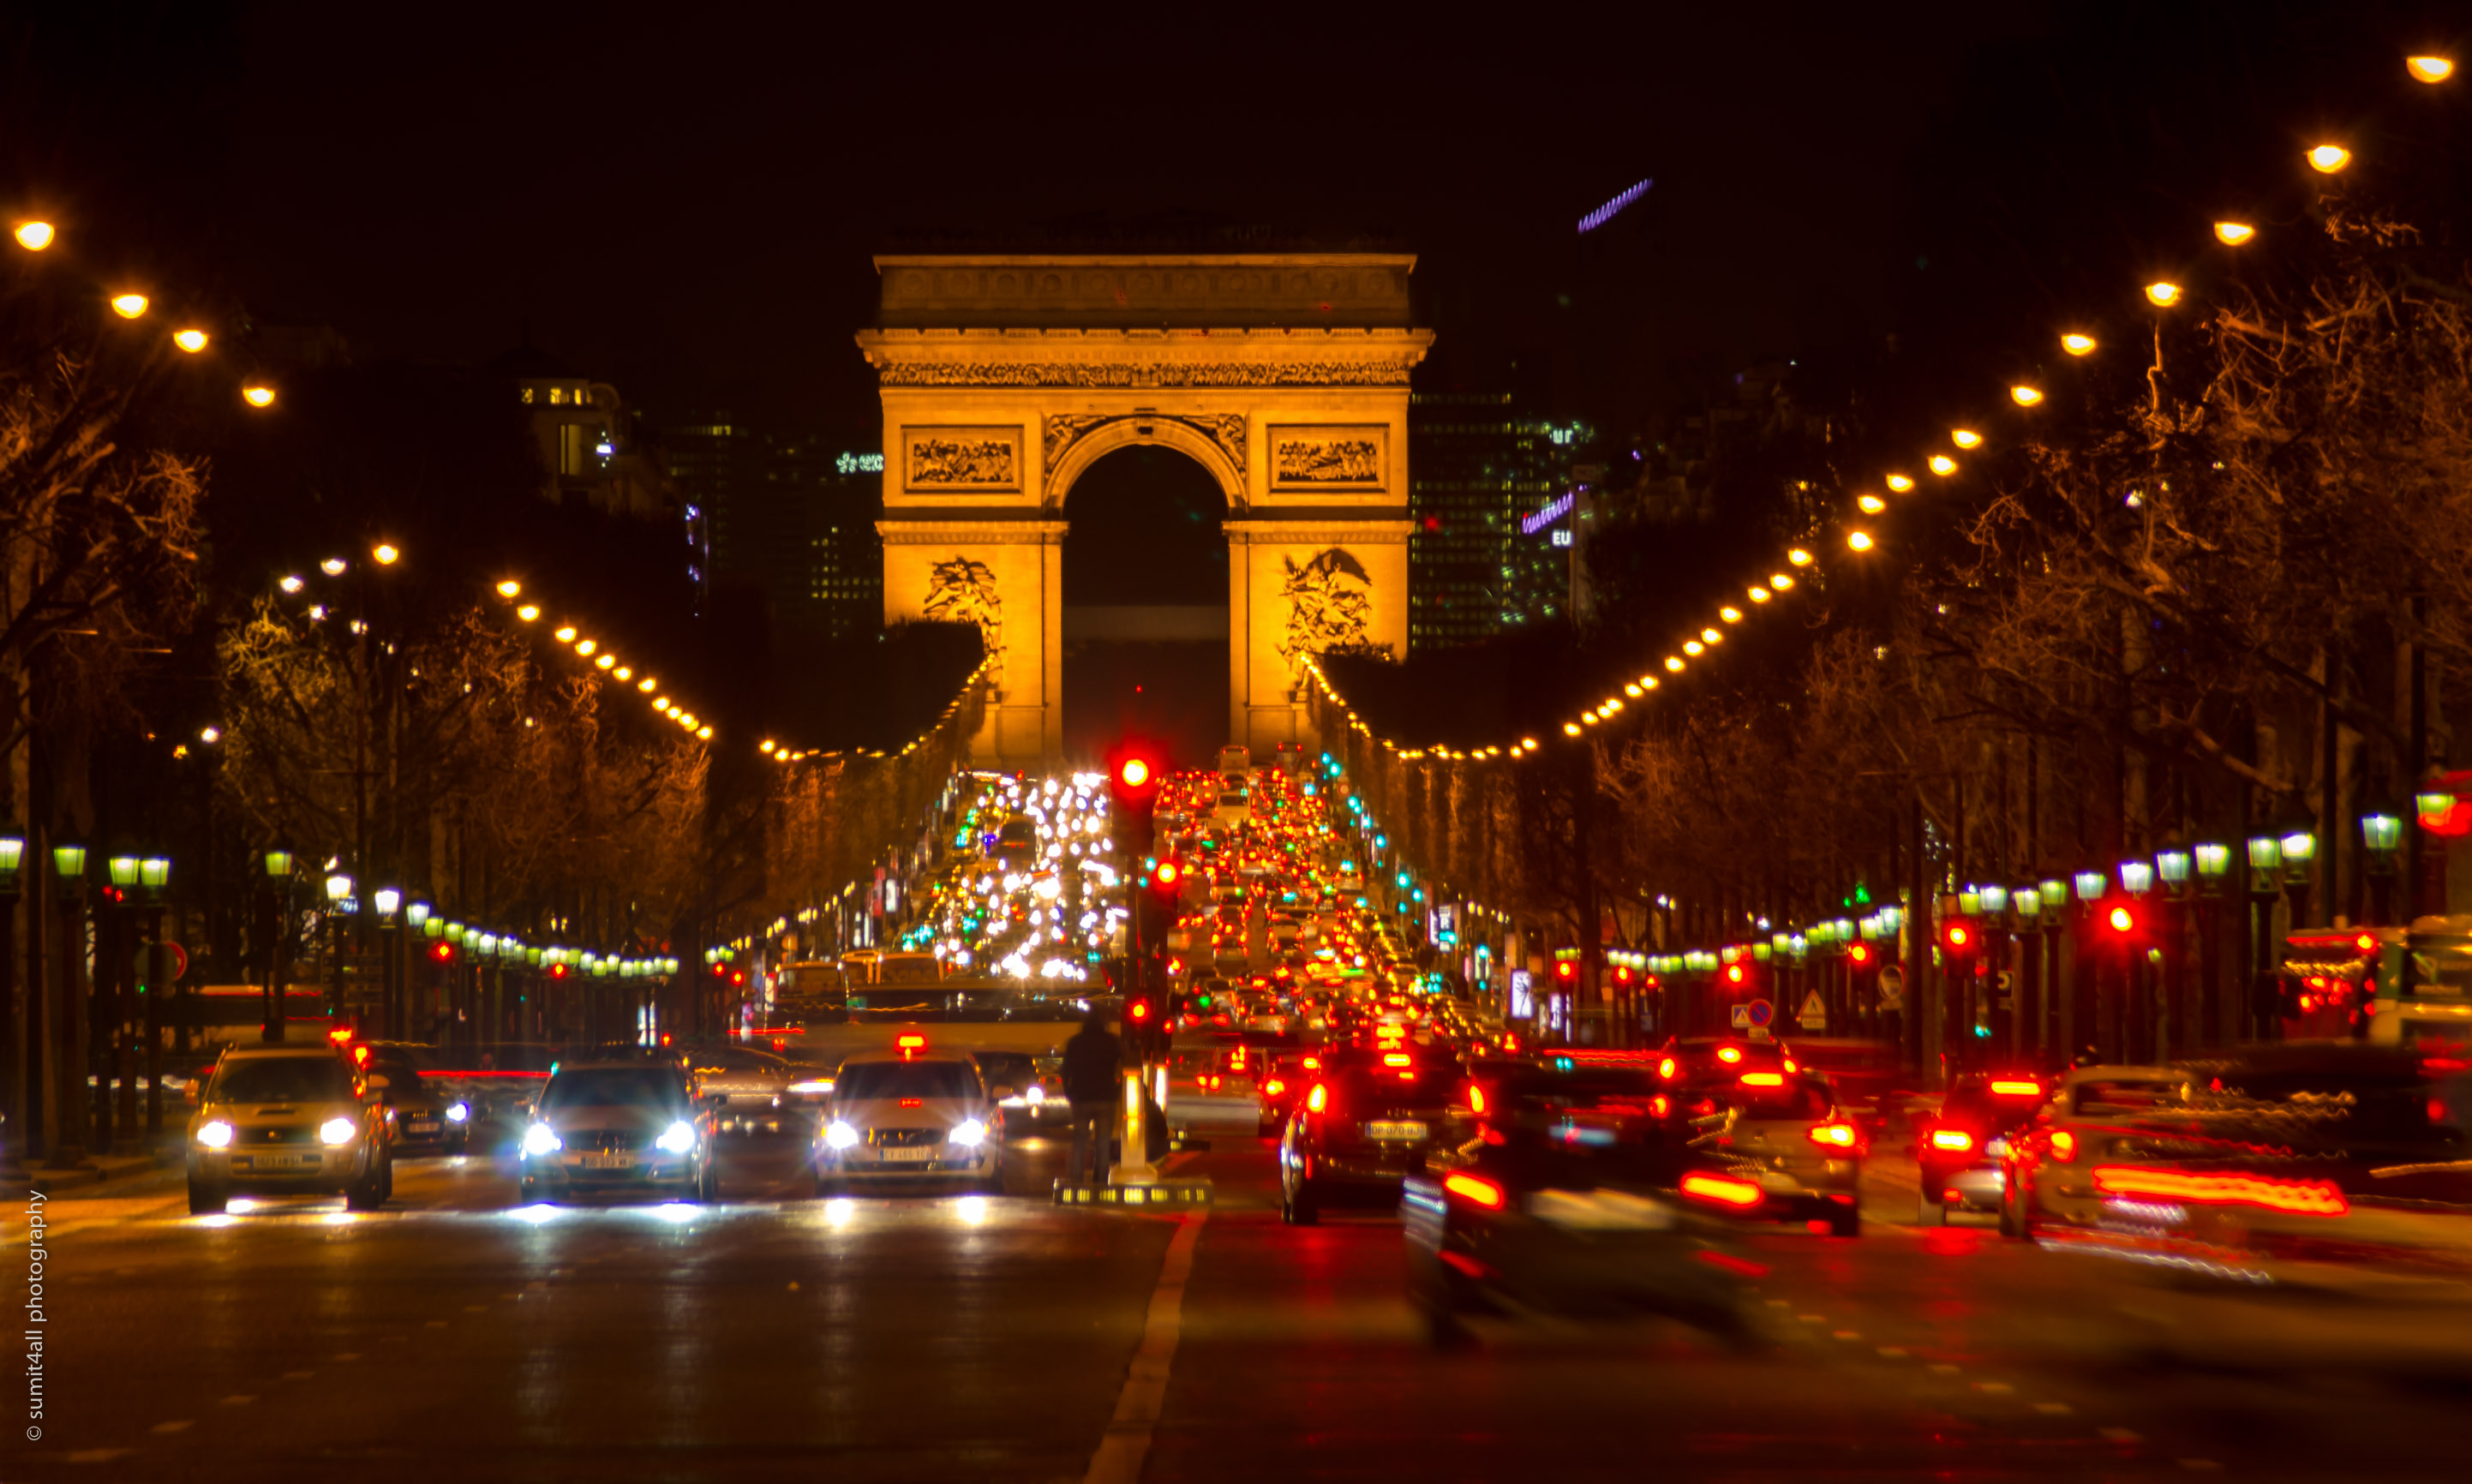 The Arc De Triomphe Paris